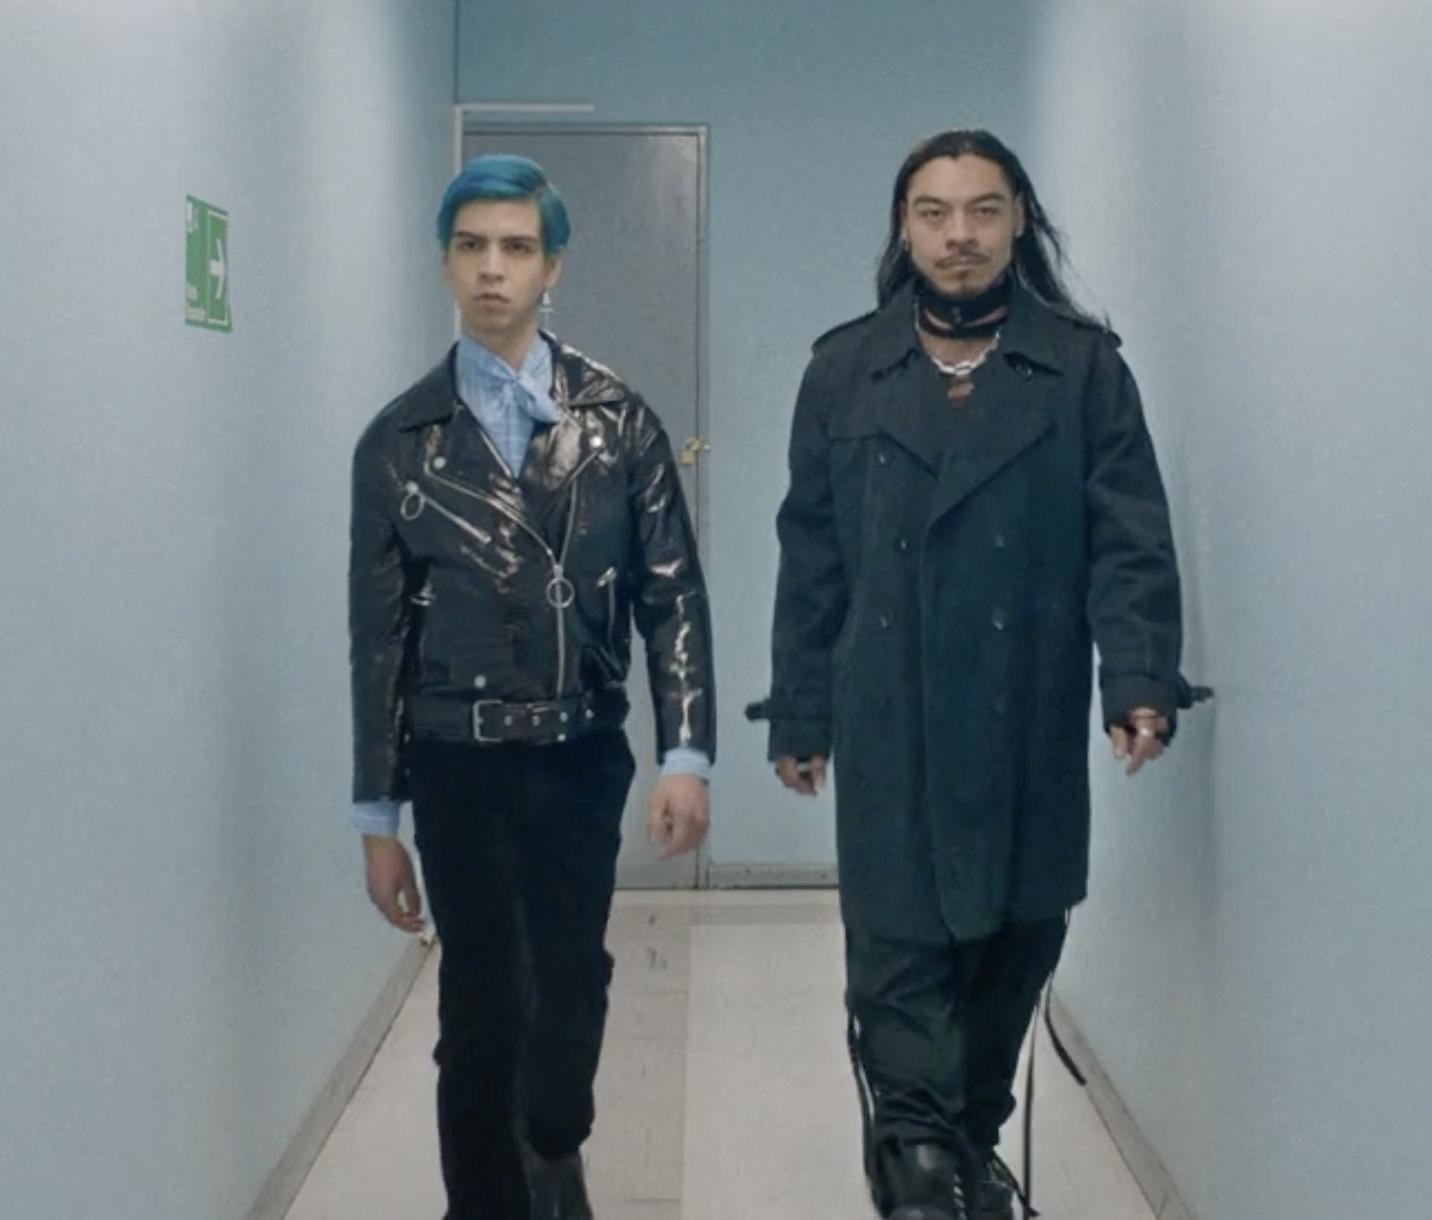 Andres walking with Renaldo down a hallway